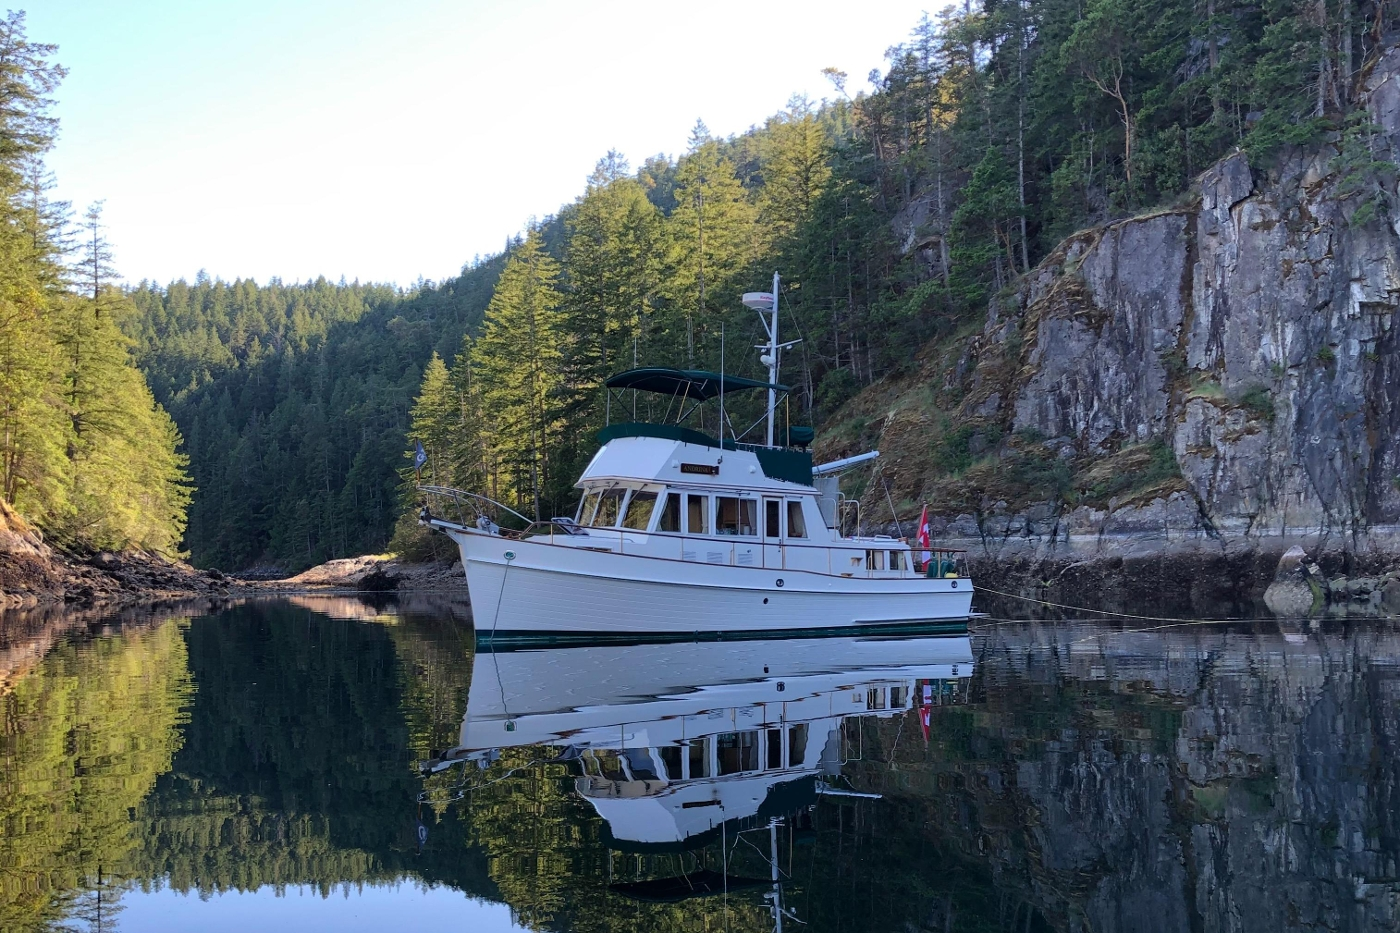 1995 Grand Banks 36 Classic, Stern Tied